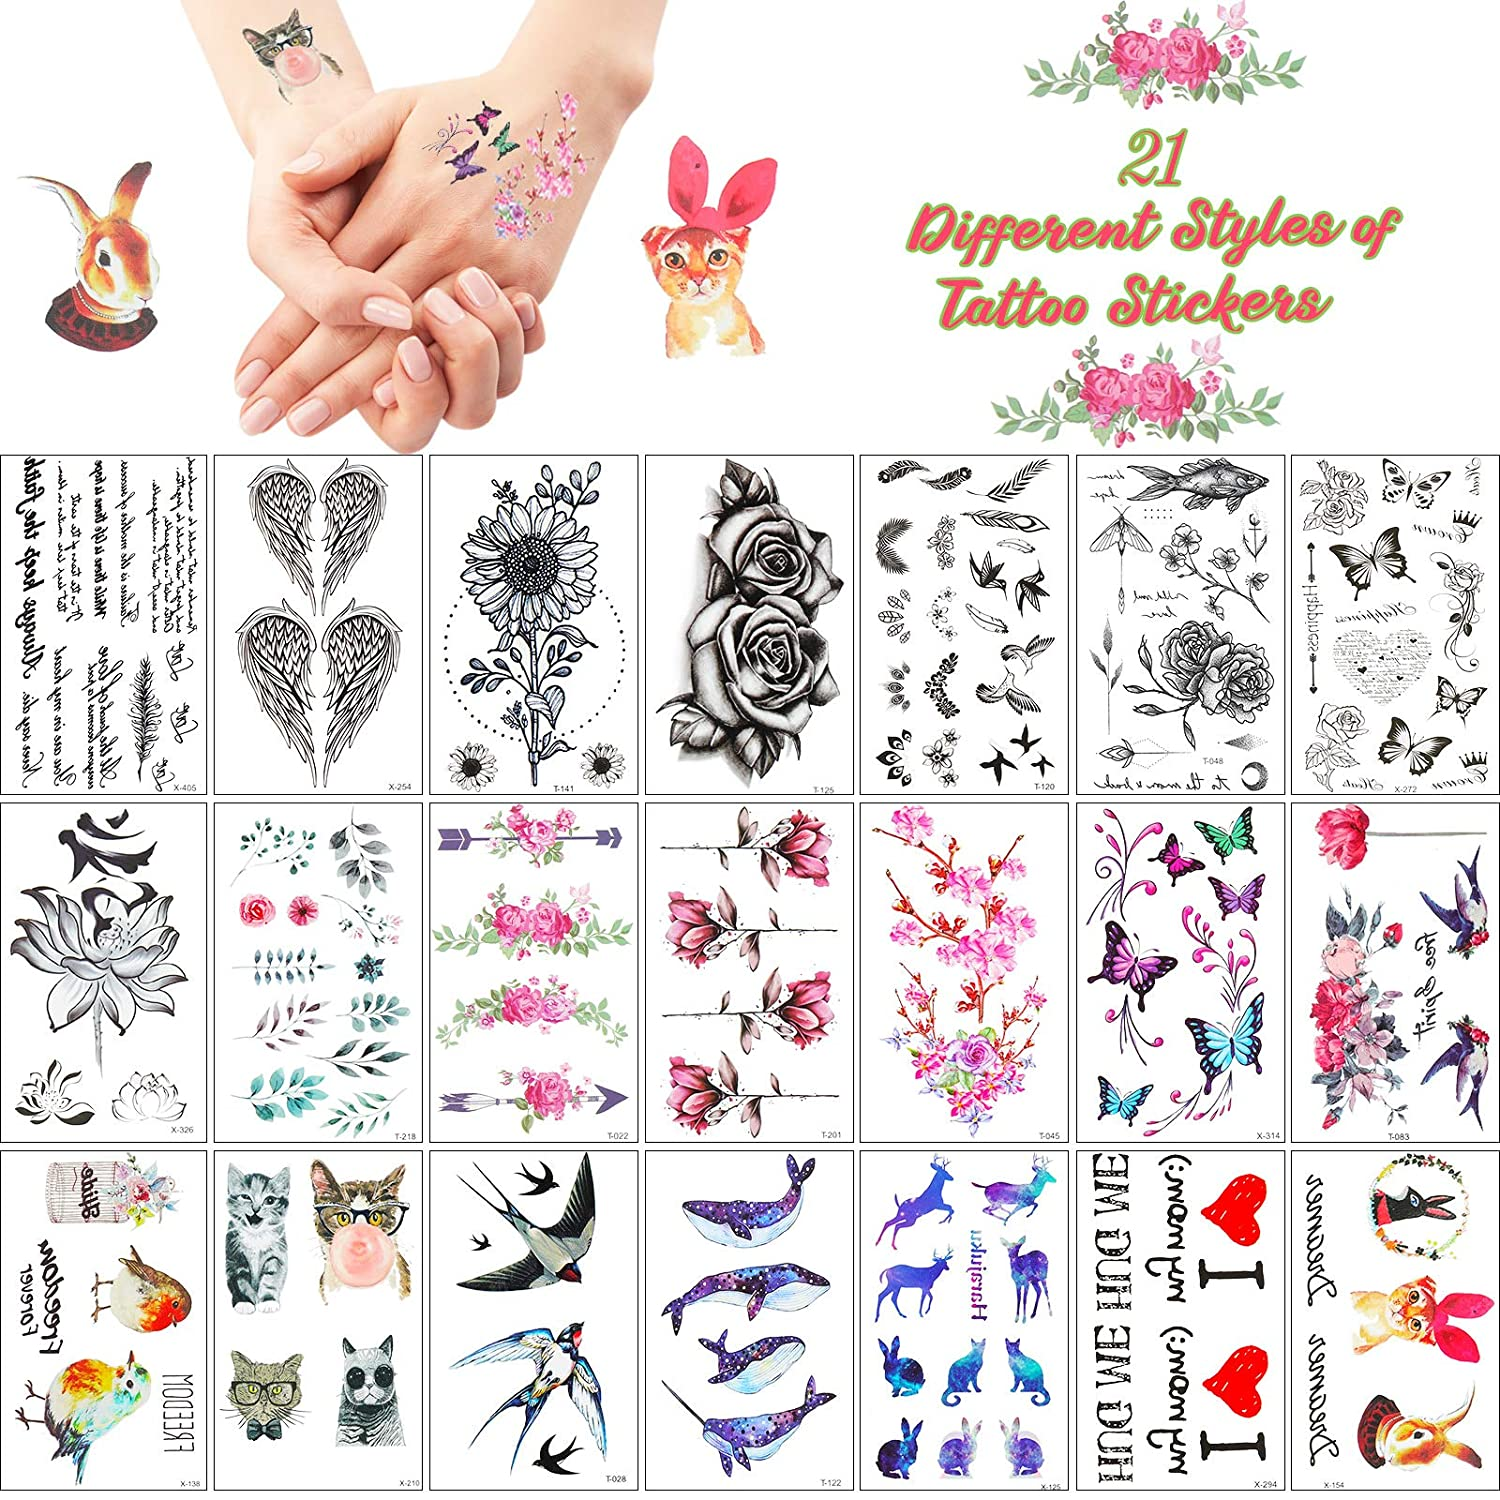 21 Sheets Realistic Tattoo Stickers Animal Tattoo Flower Tattoo Stickers Flower Temporary Tattoos Waterproof Stickers for Women Girls Adult for Arms Legs